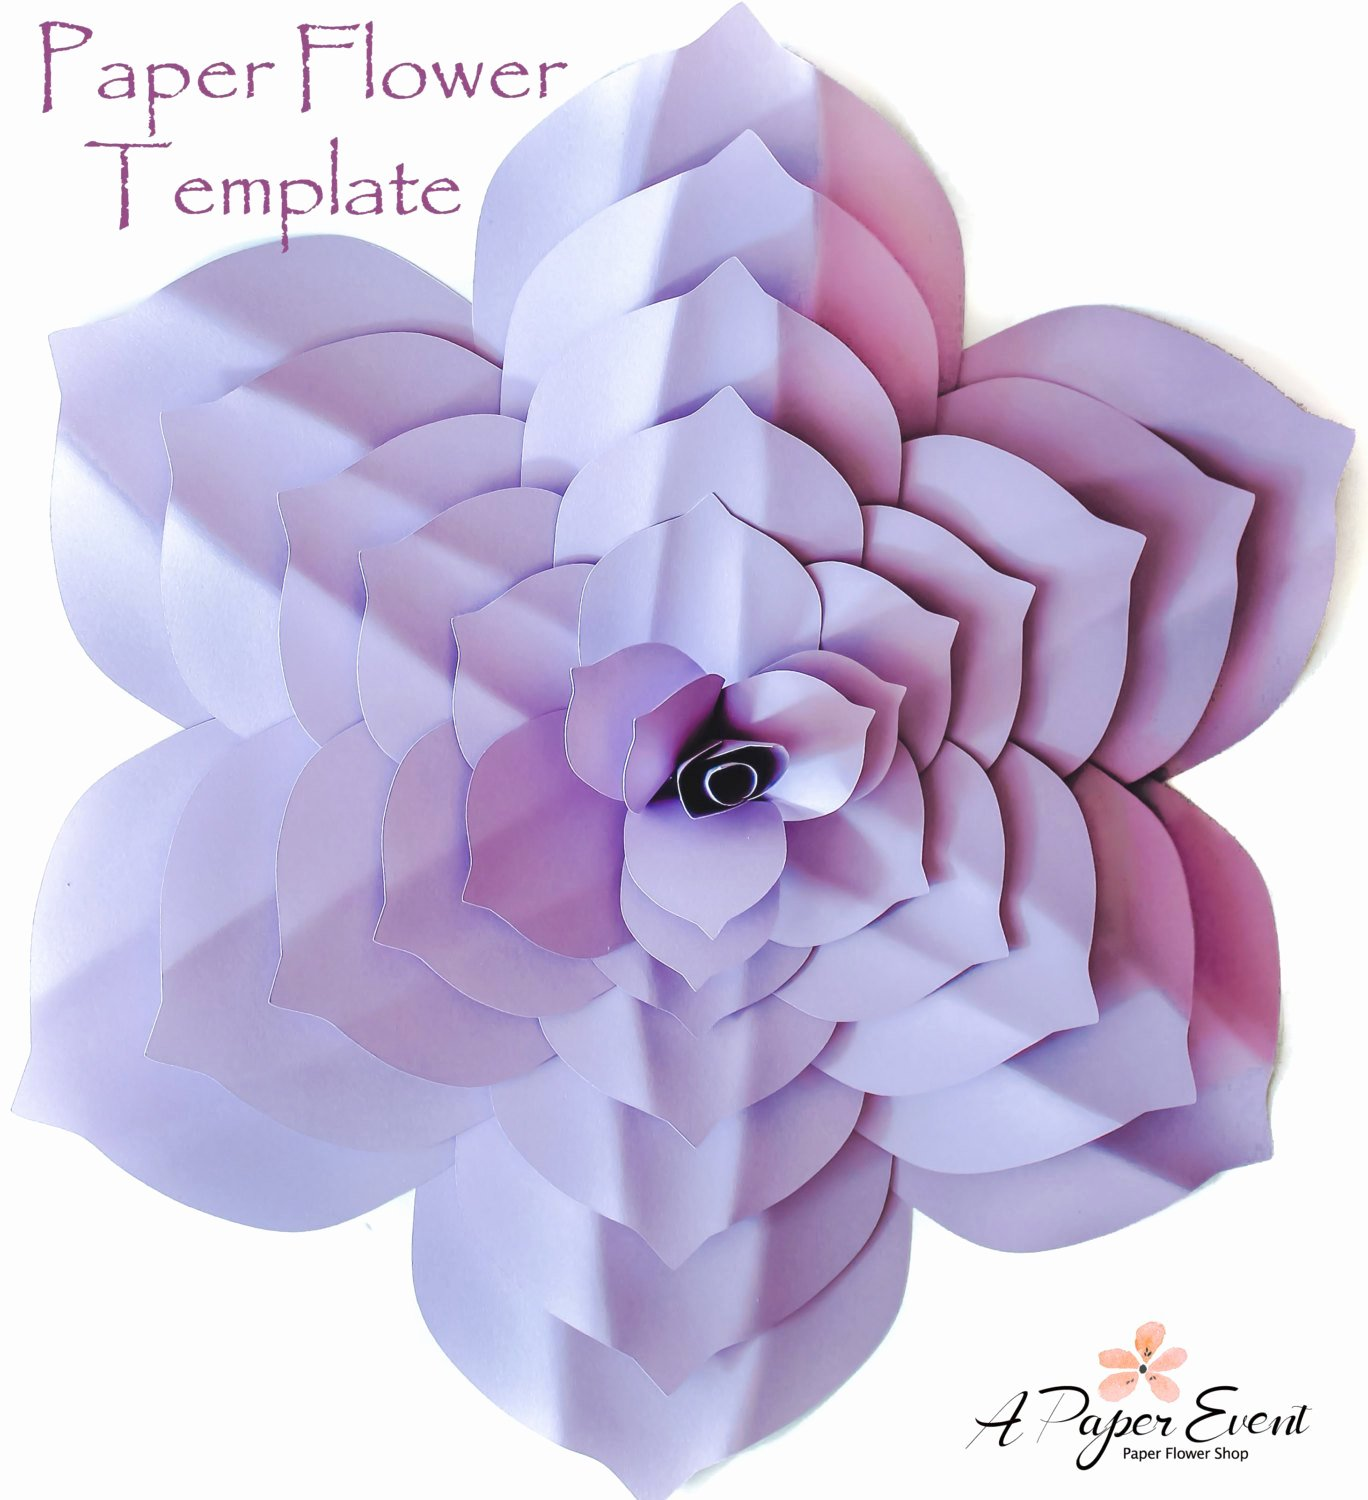 Template for Paper Flowers Fresh Paper Flower Template Diy Paper Flower Paper Flower